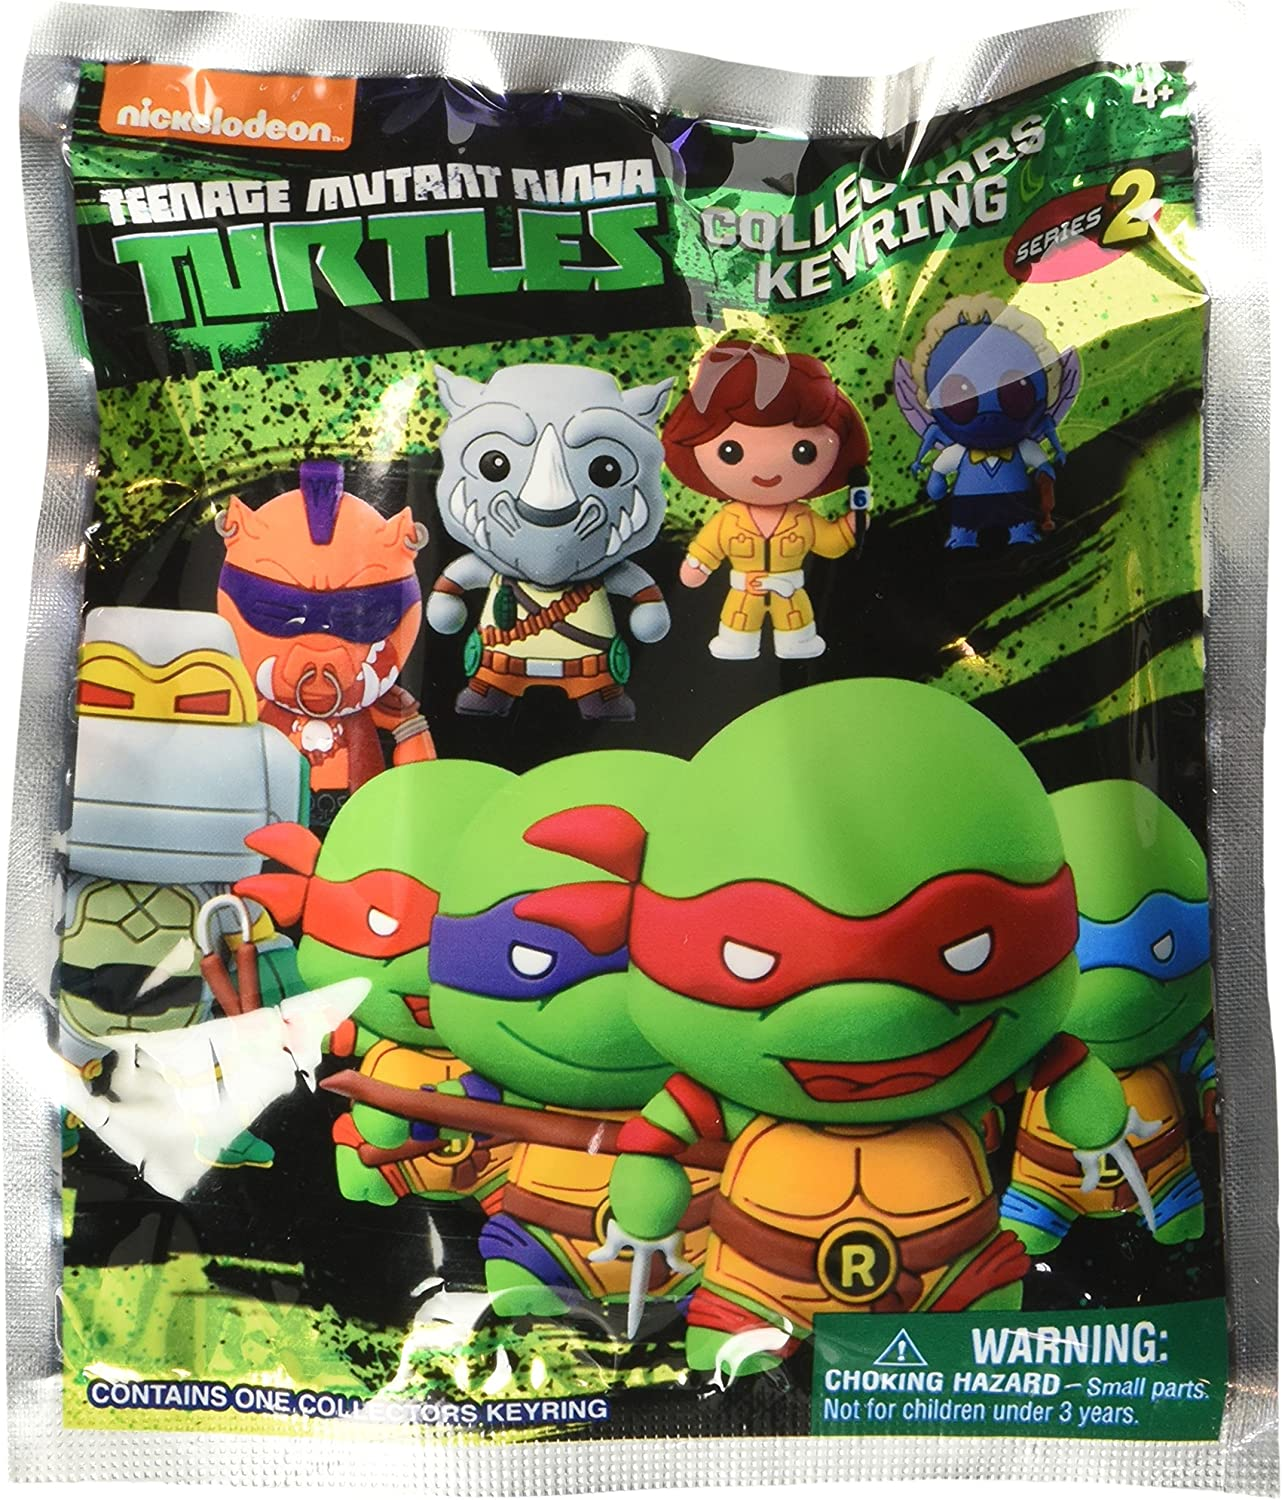 Nickelodeon Teenage Mutant Ninja Turtles Series 2 3D Foam Blind Bag